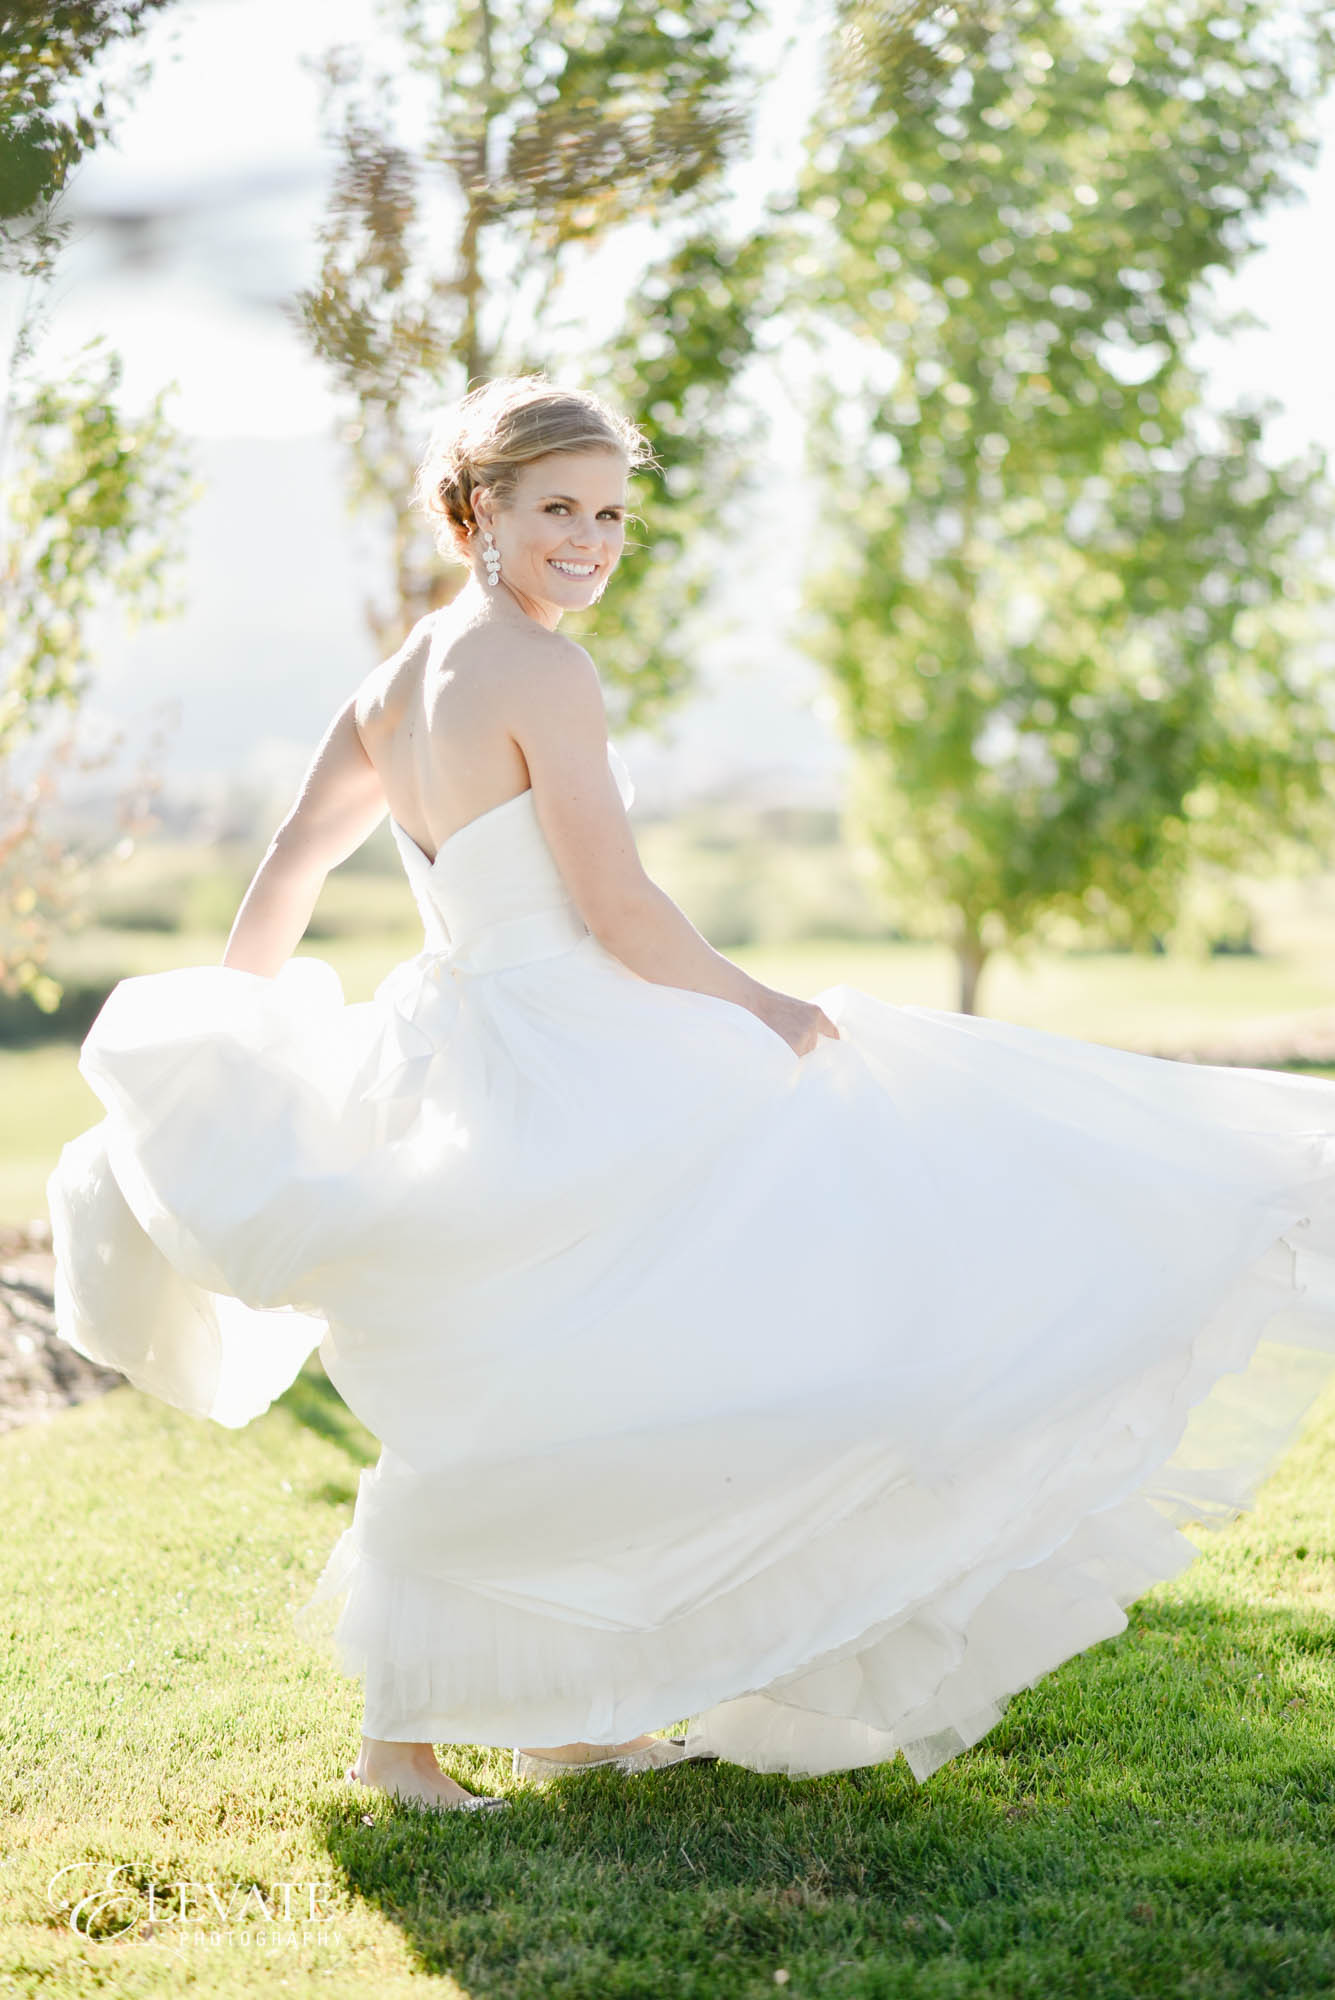 wedding dresses in colorado springs colorado bridesmaid With wedding dresses colorado springs